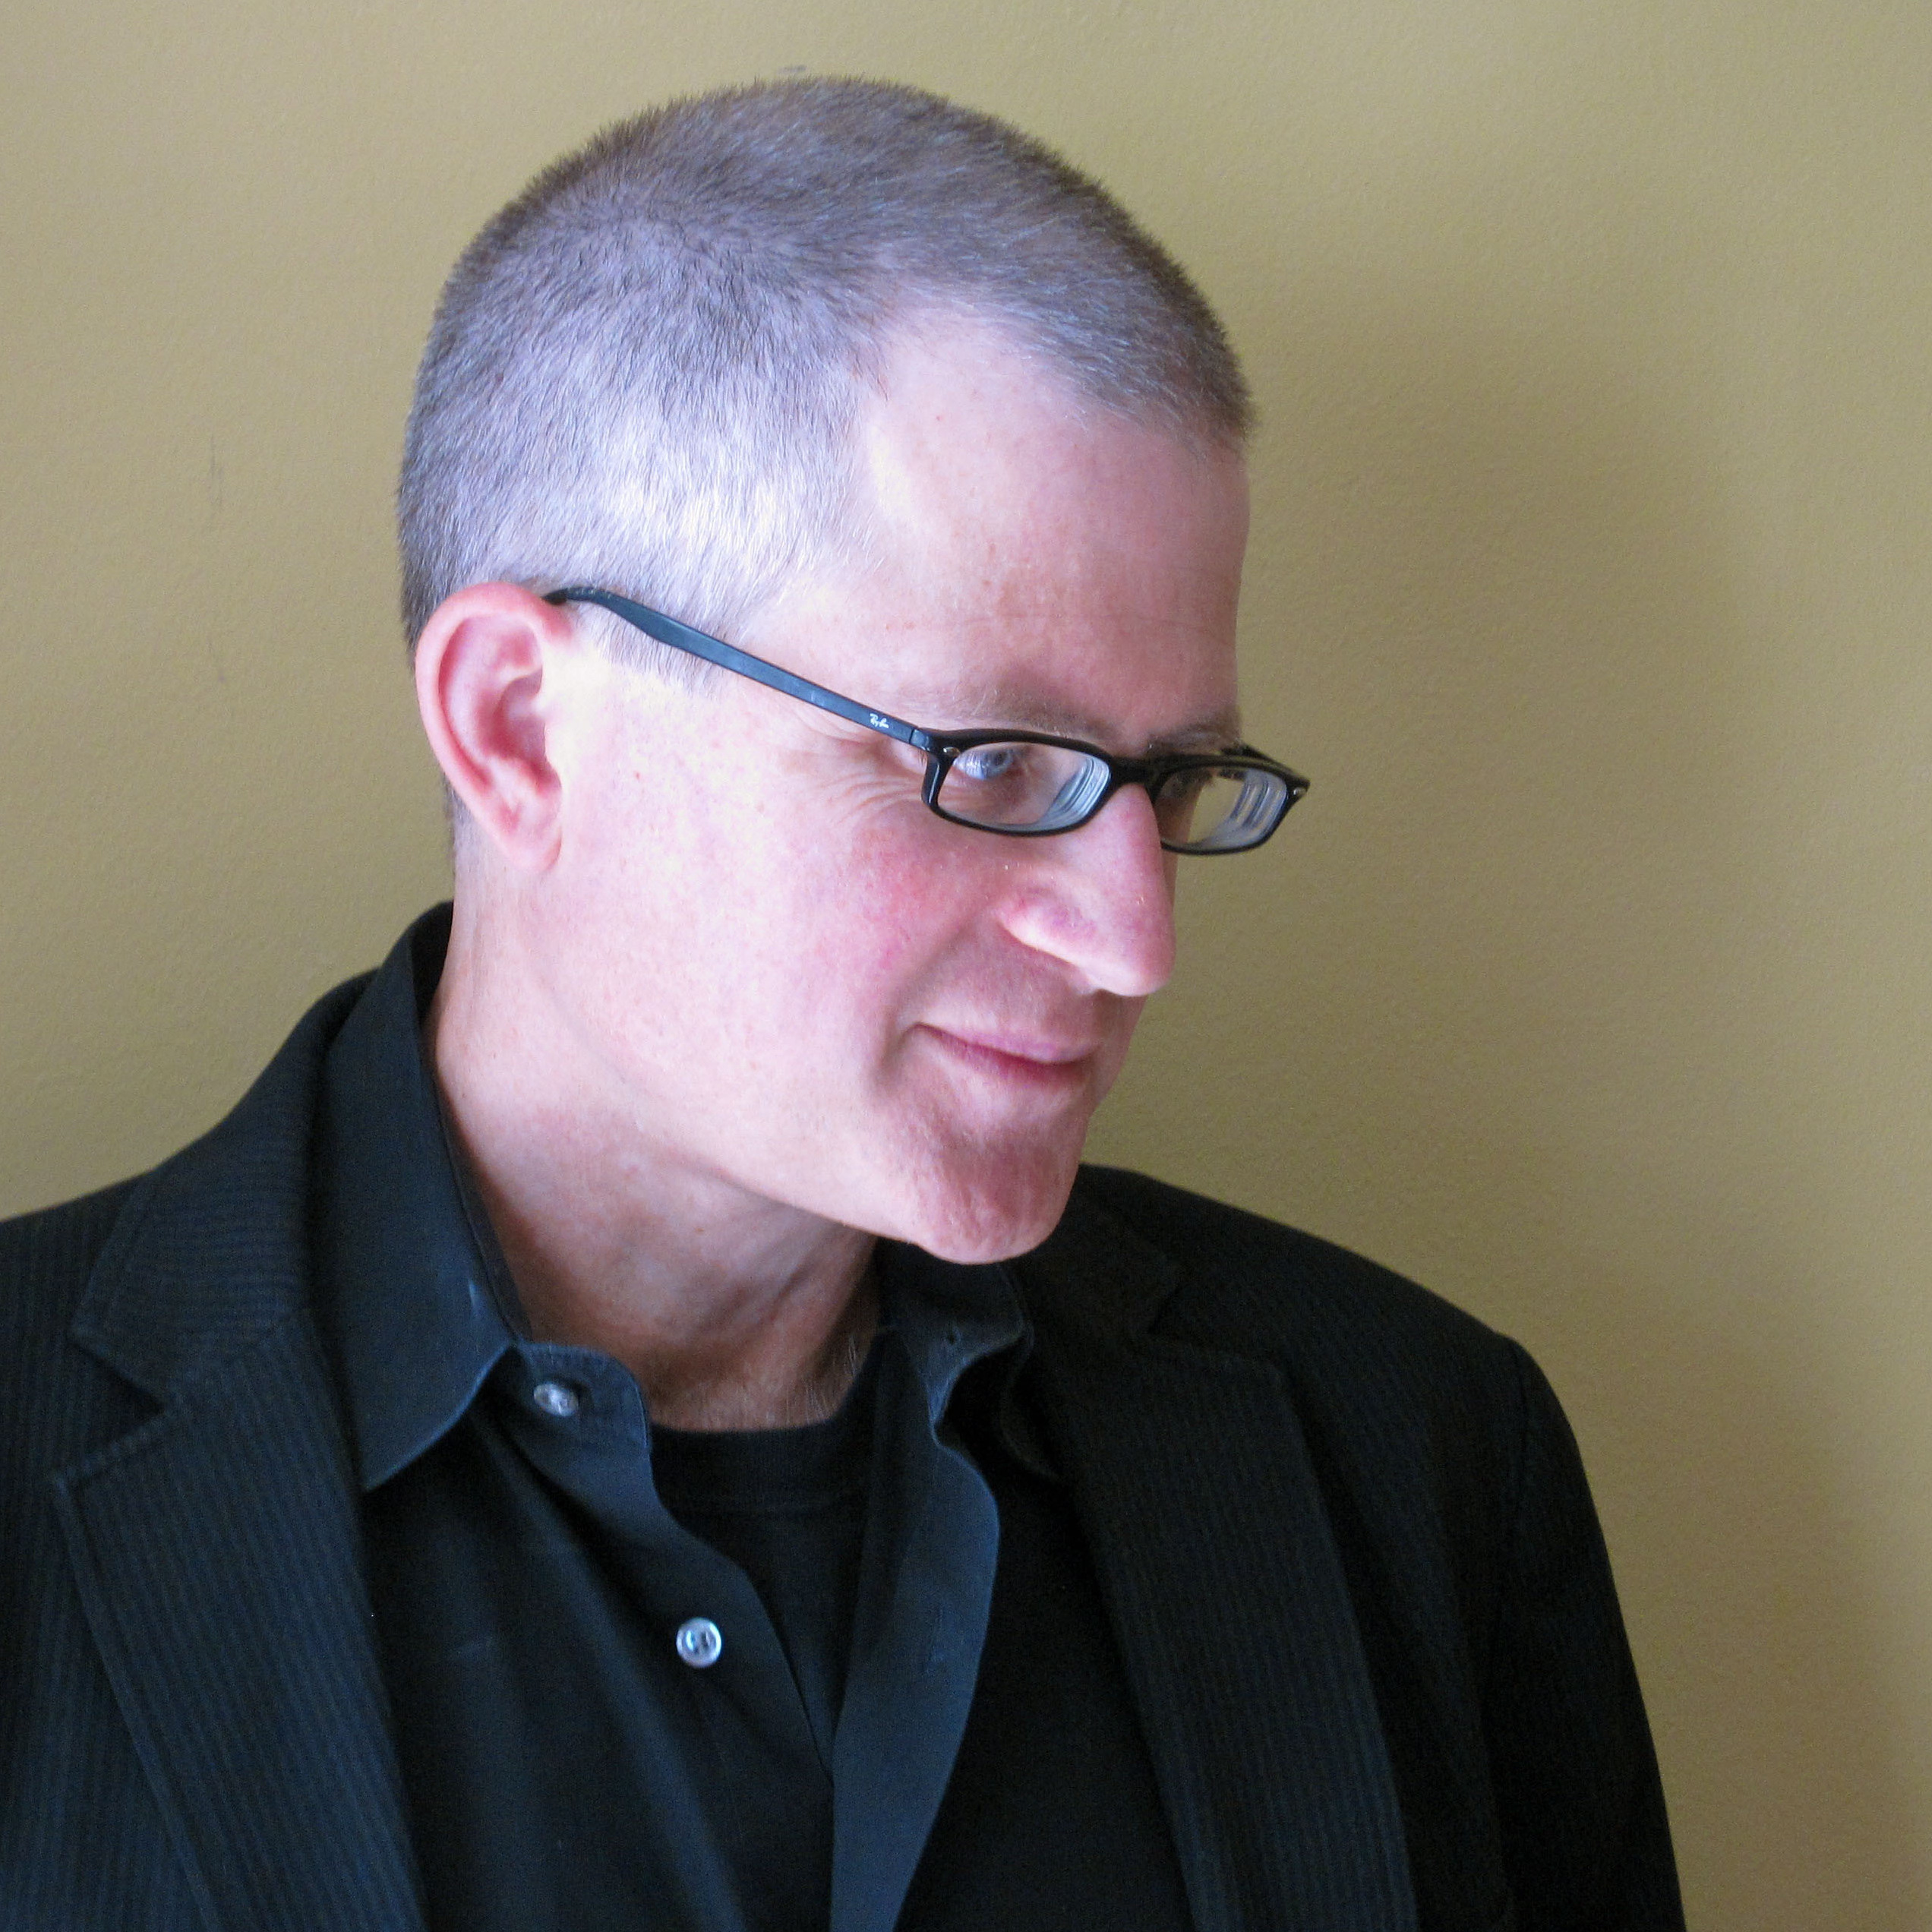 Christian Wiman is an American poet and the editor of Poetry magazine.